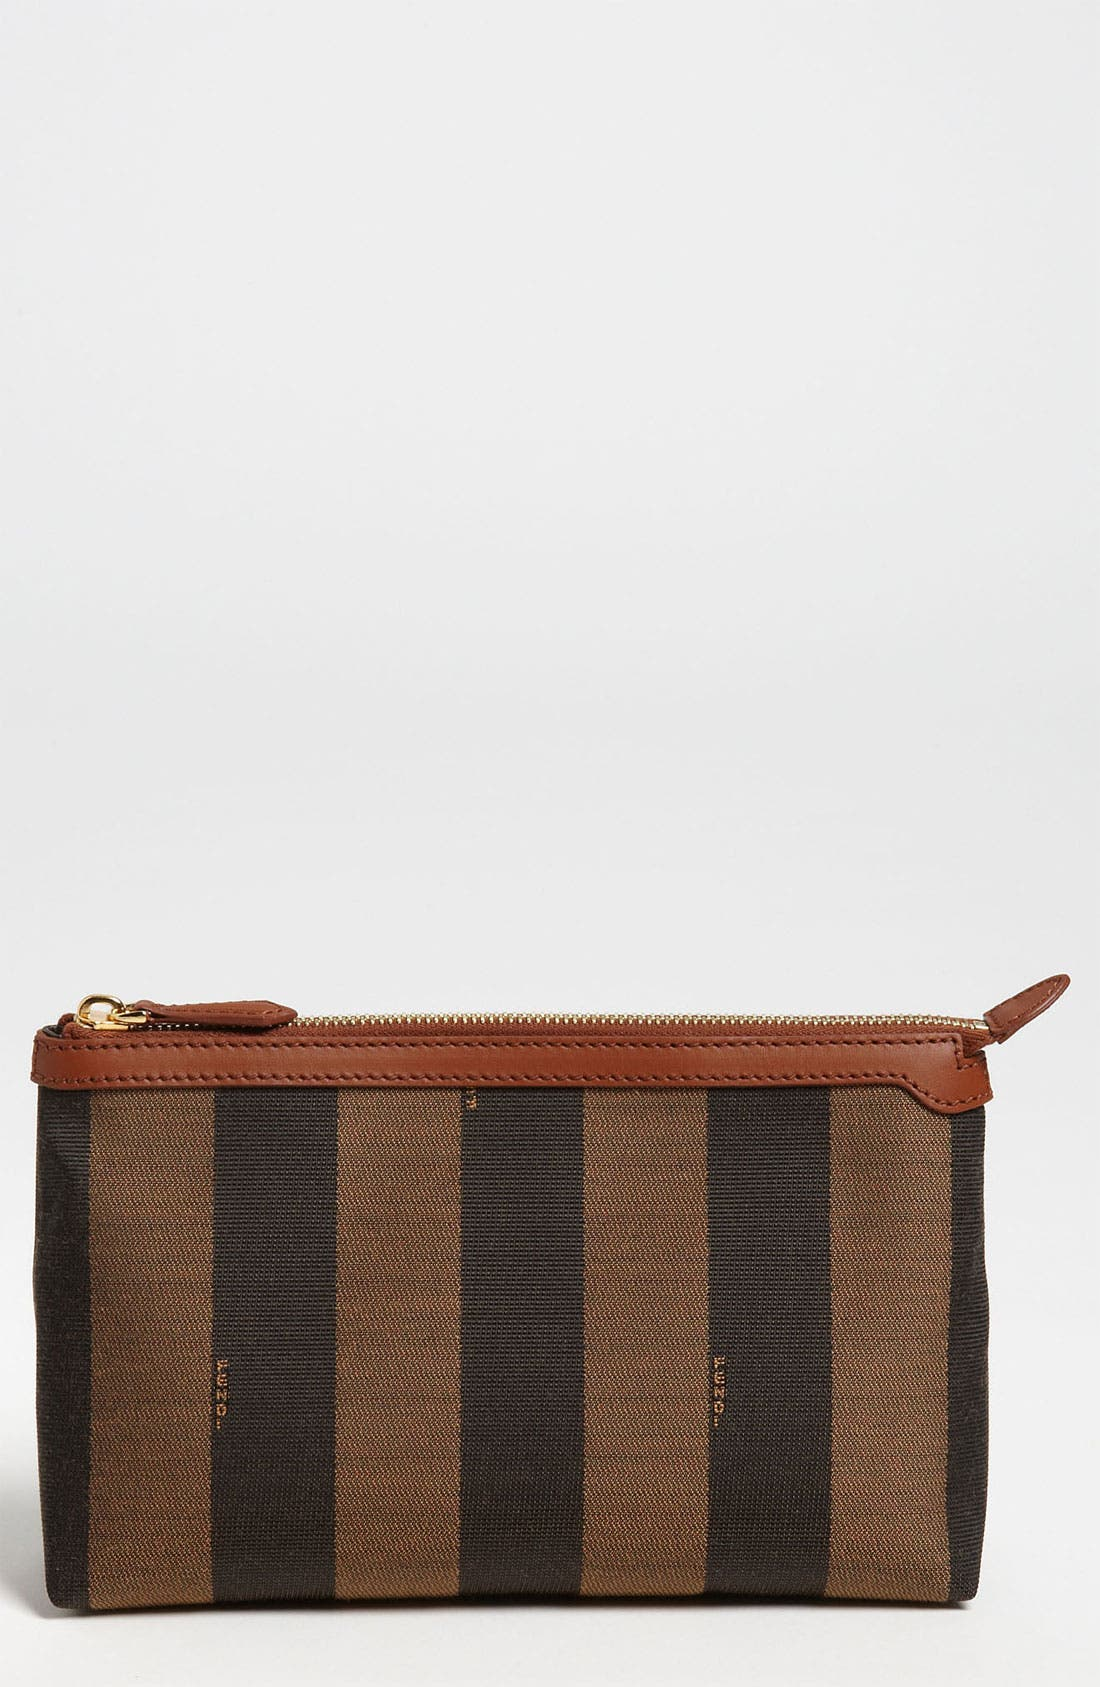 Alternate Image 1 Selected - Fendi 'Pequin - Large' Cosmetics Case